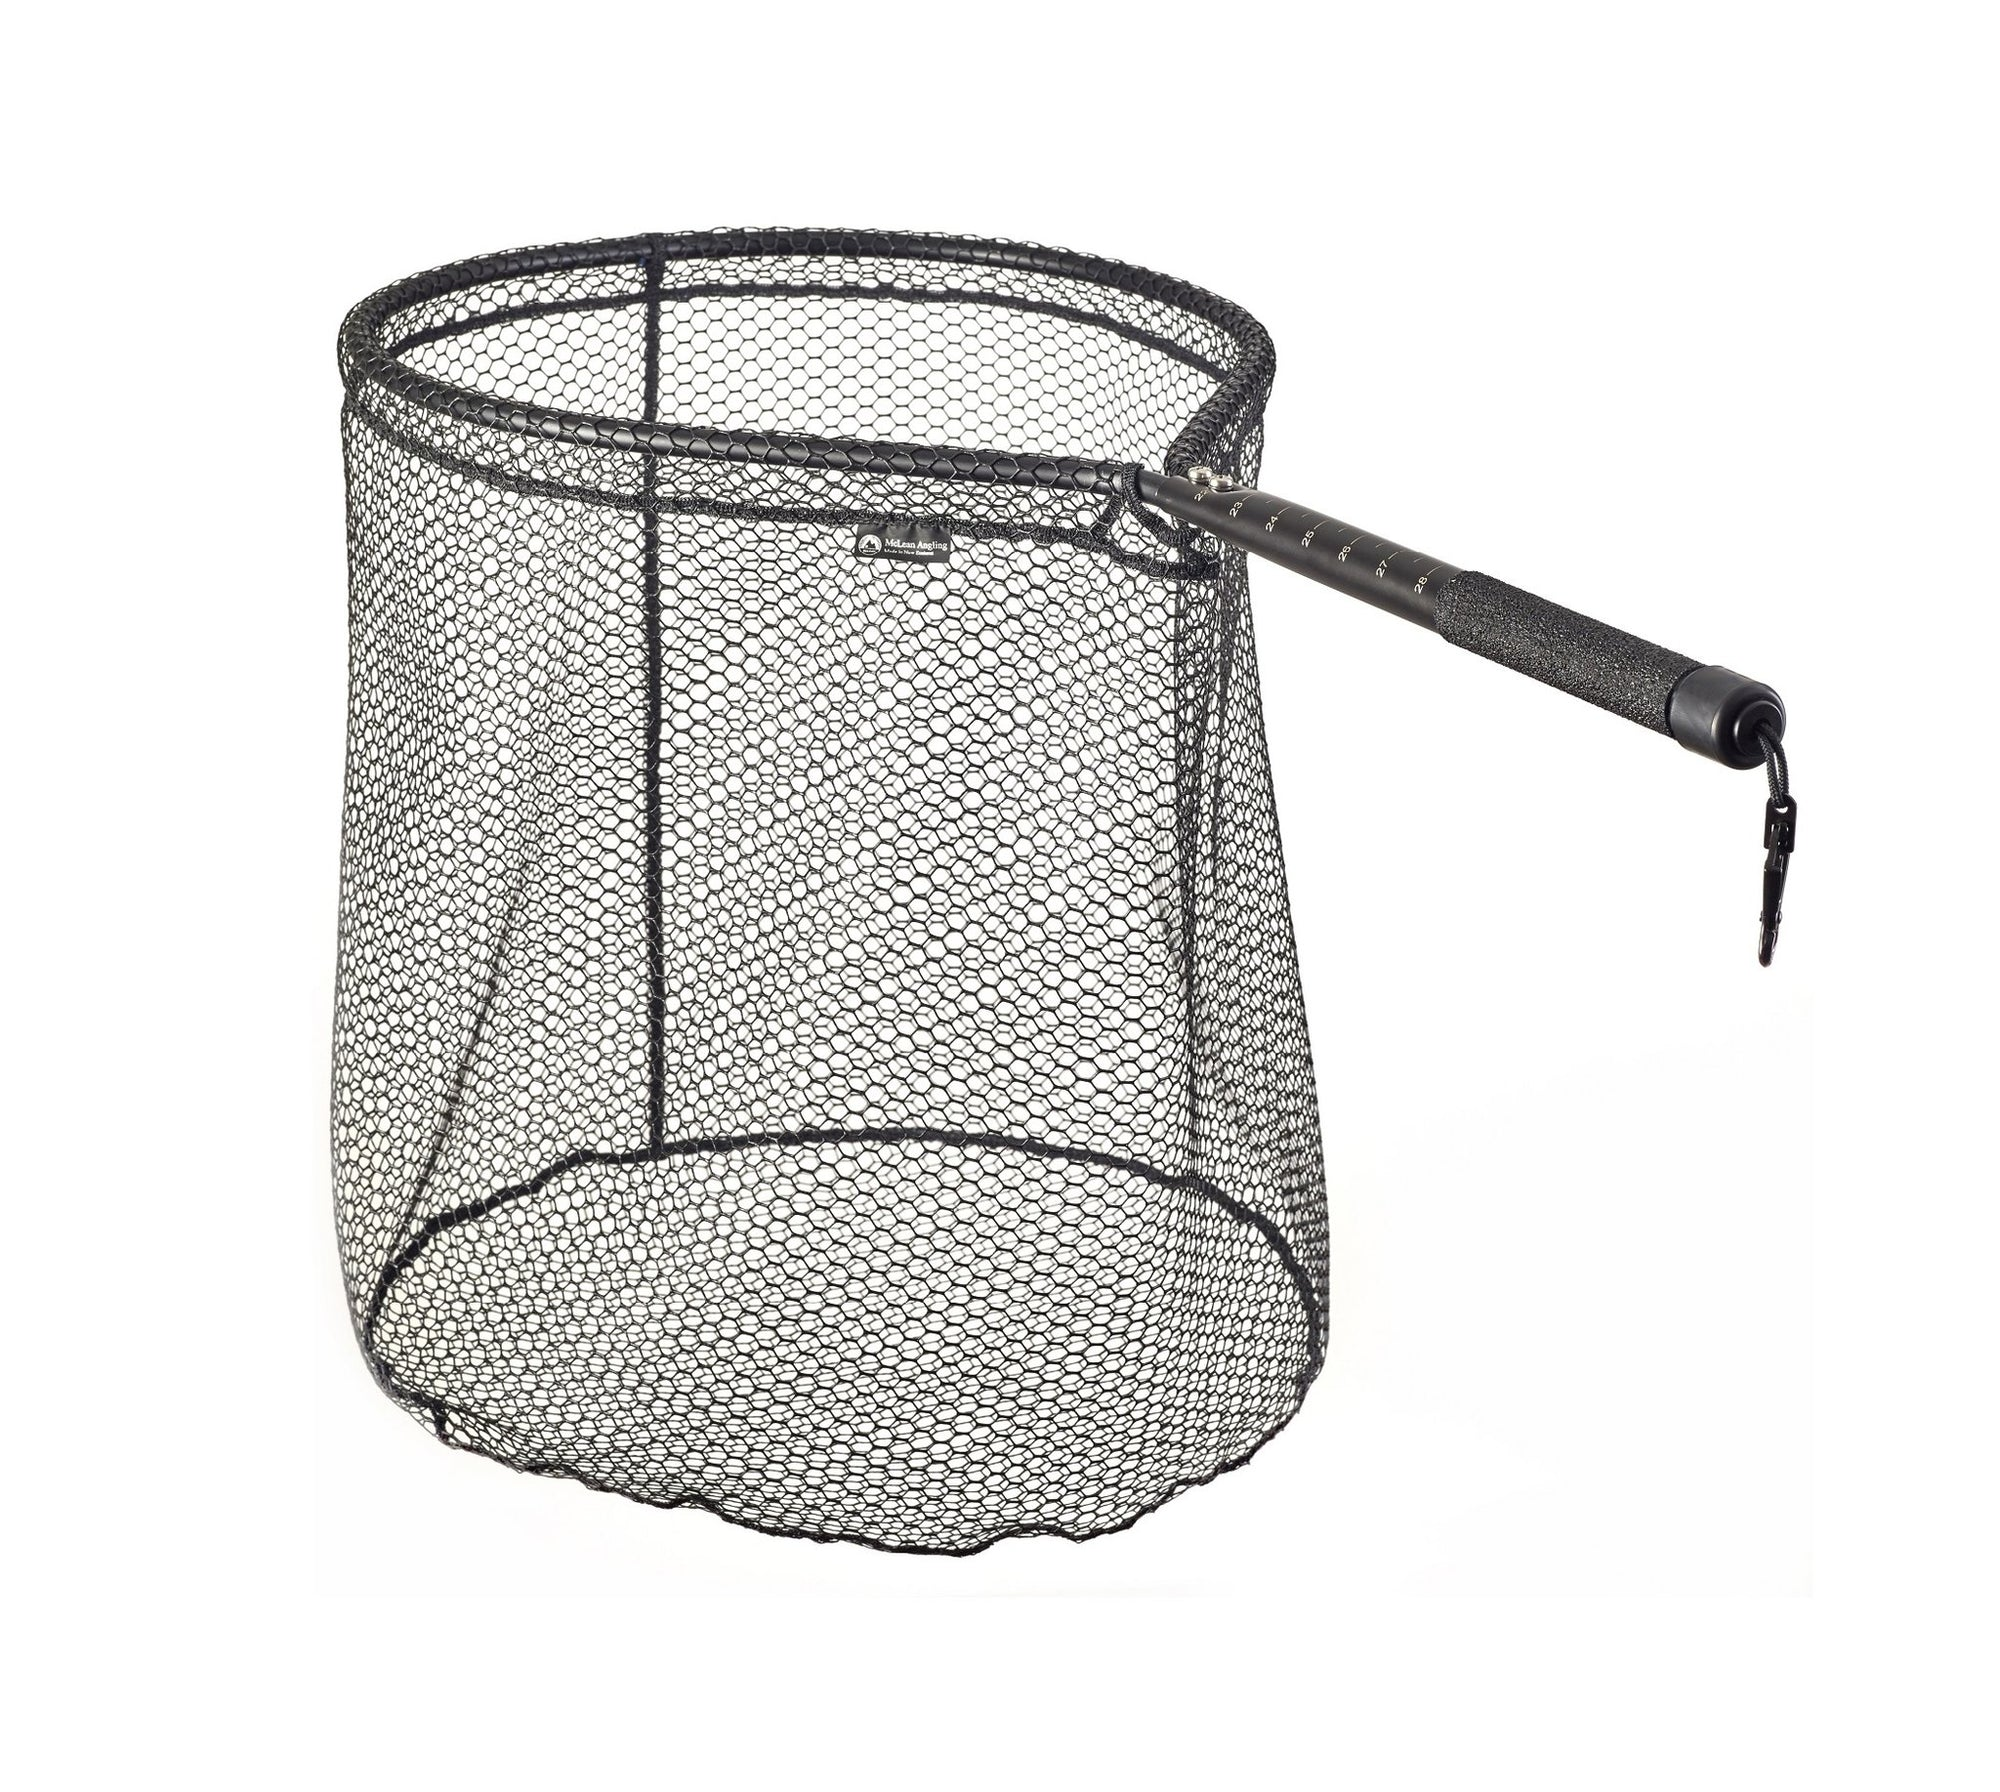 Maclean Floating Kayak Net